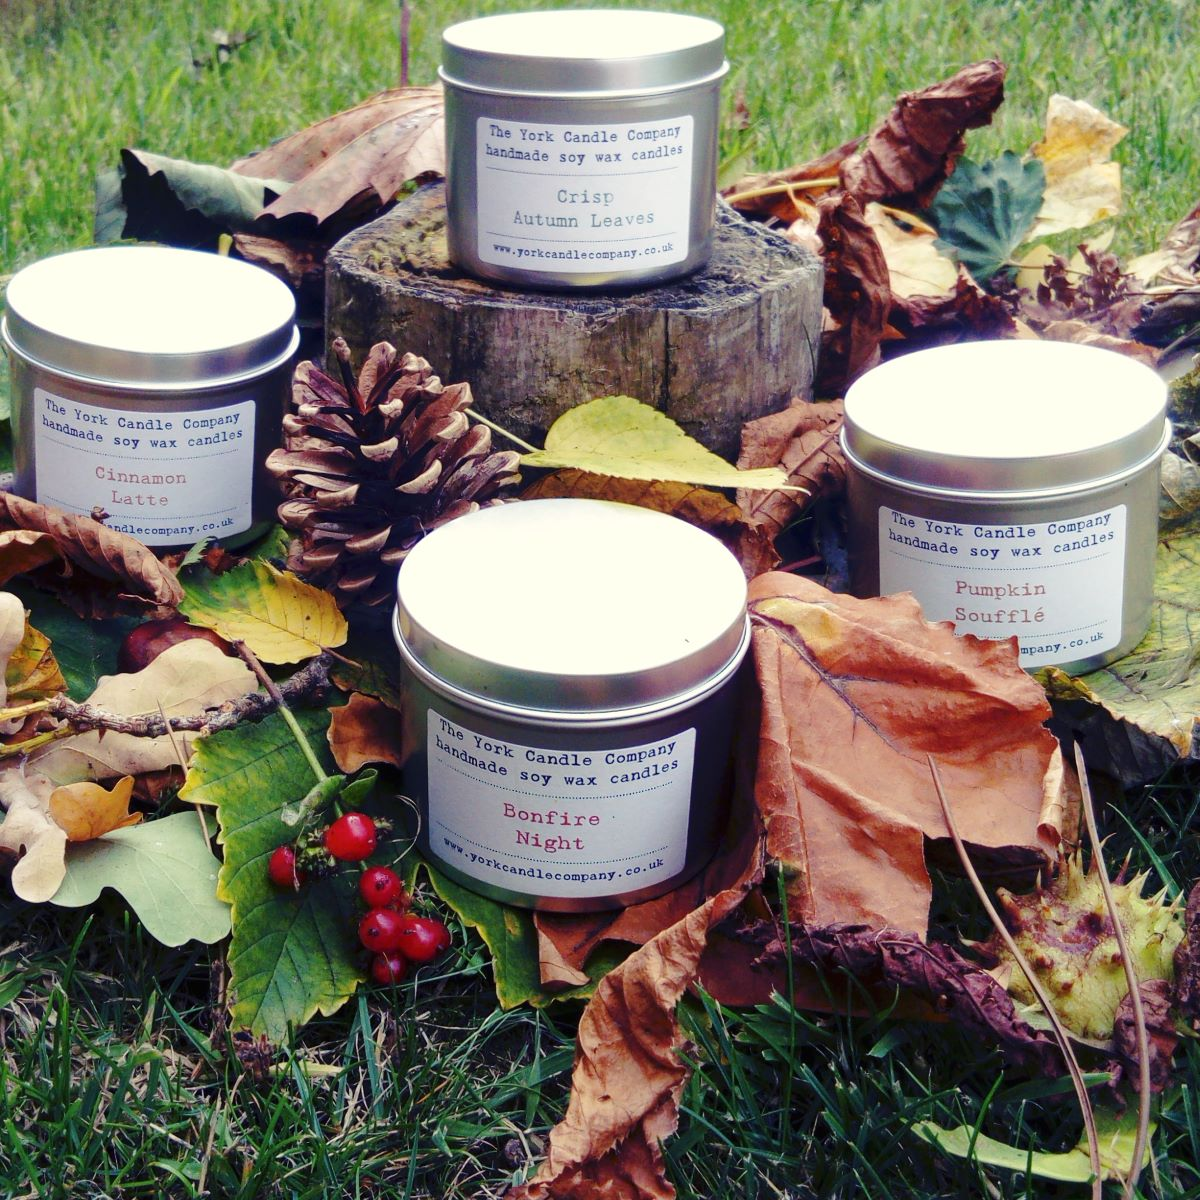 Yvonne Blenkinsop - The York Candle Company